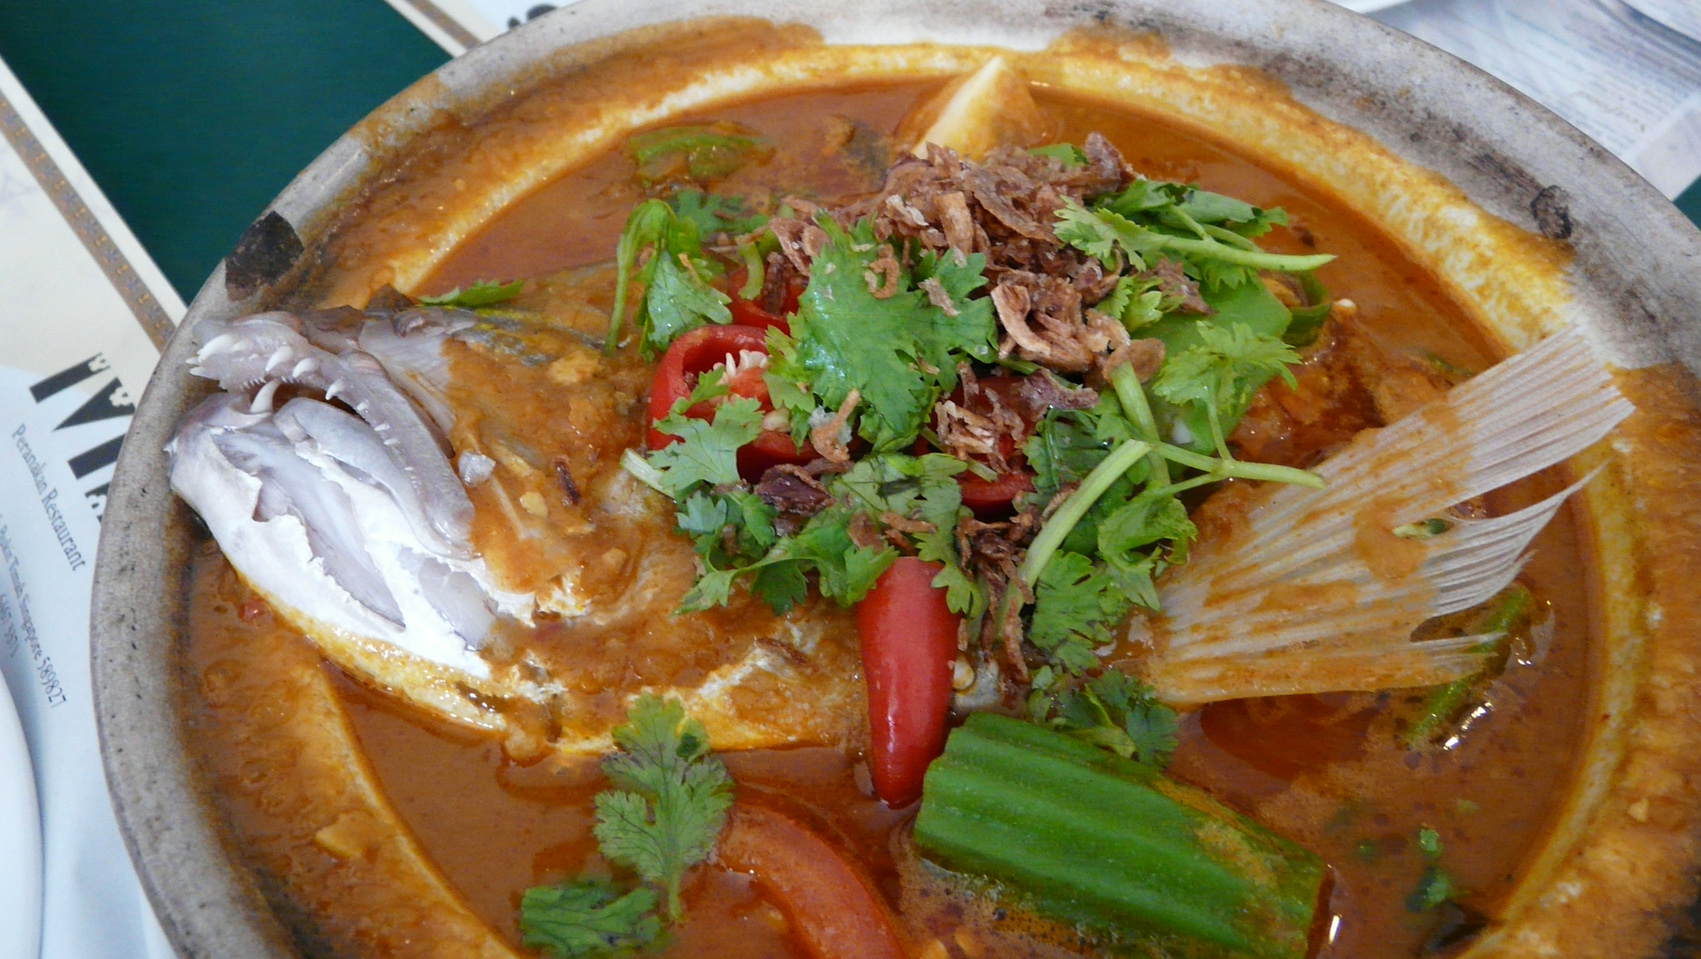 Anthony Bourdain Indonesia - Gulai Kepala Ikan - photo by Chensiyuan under GFDL and CC-BY-SA-4.0,3.0,2.5,2.0,1.0